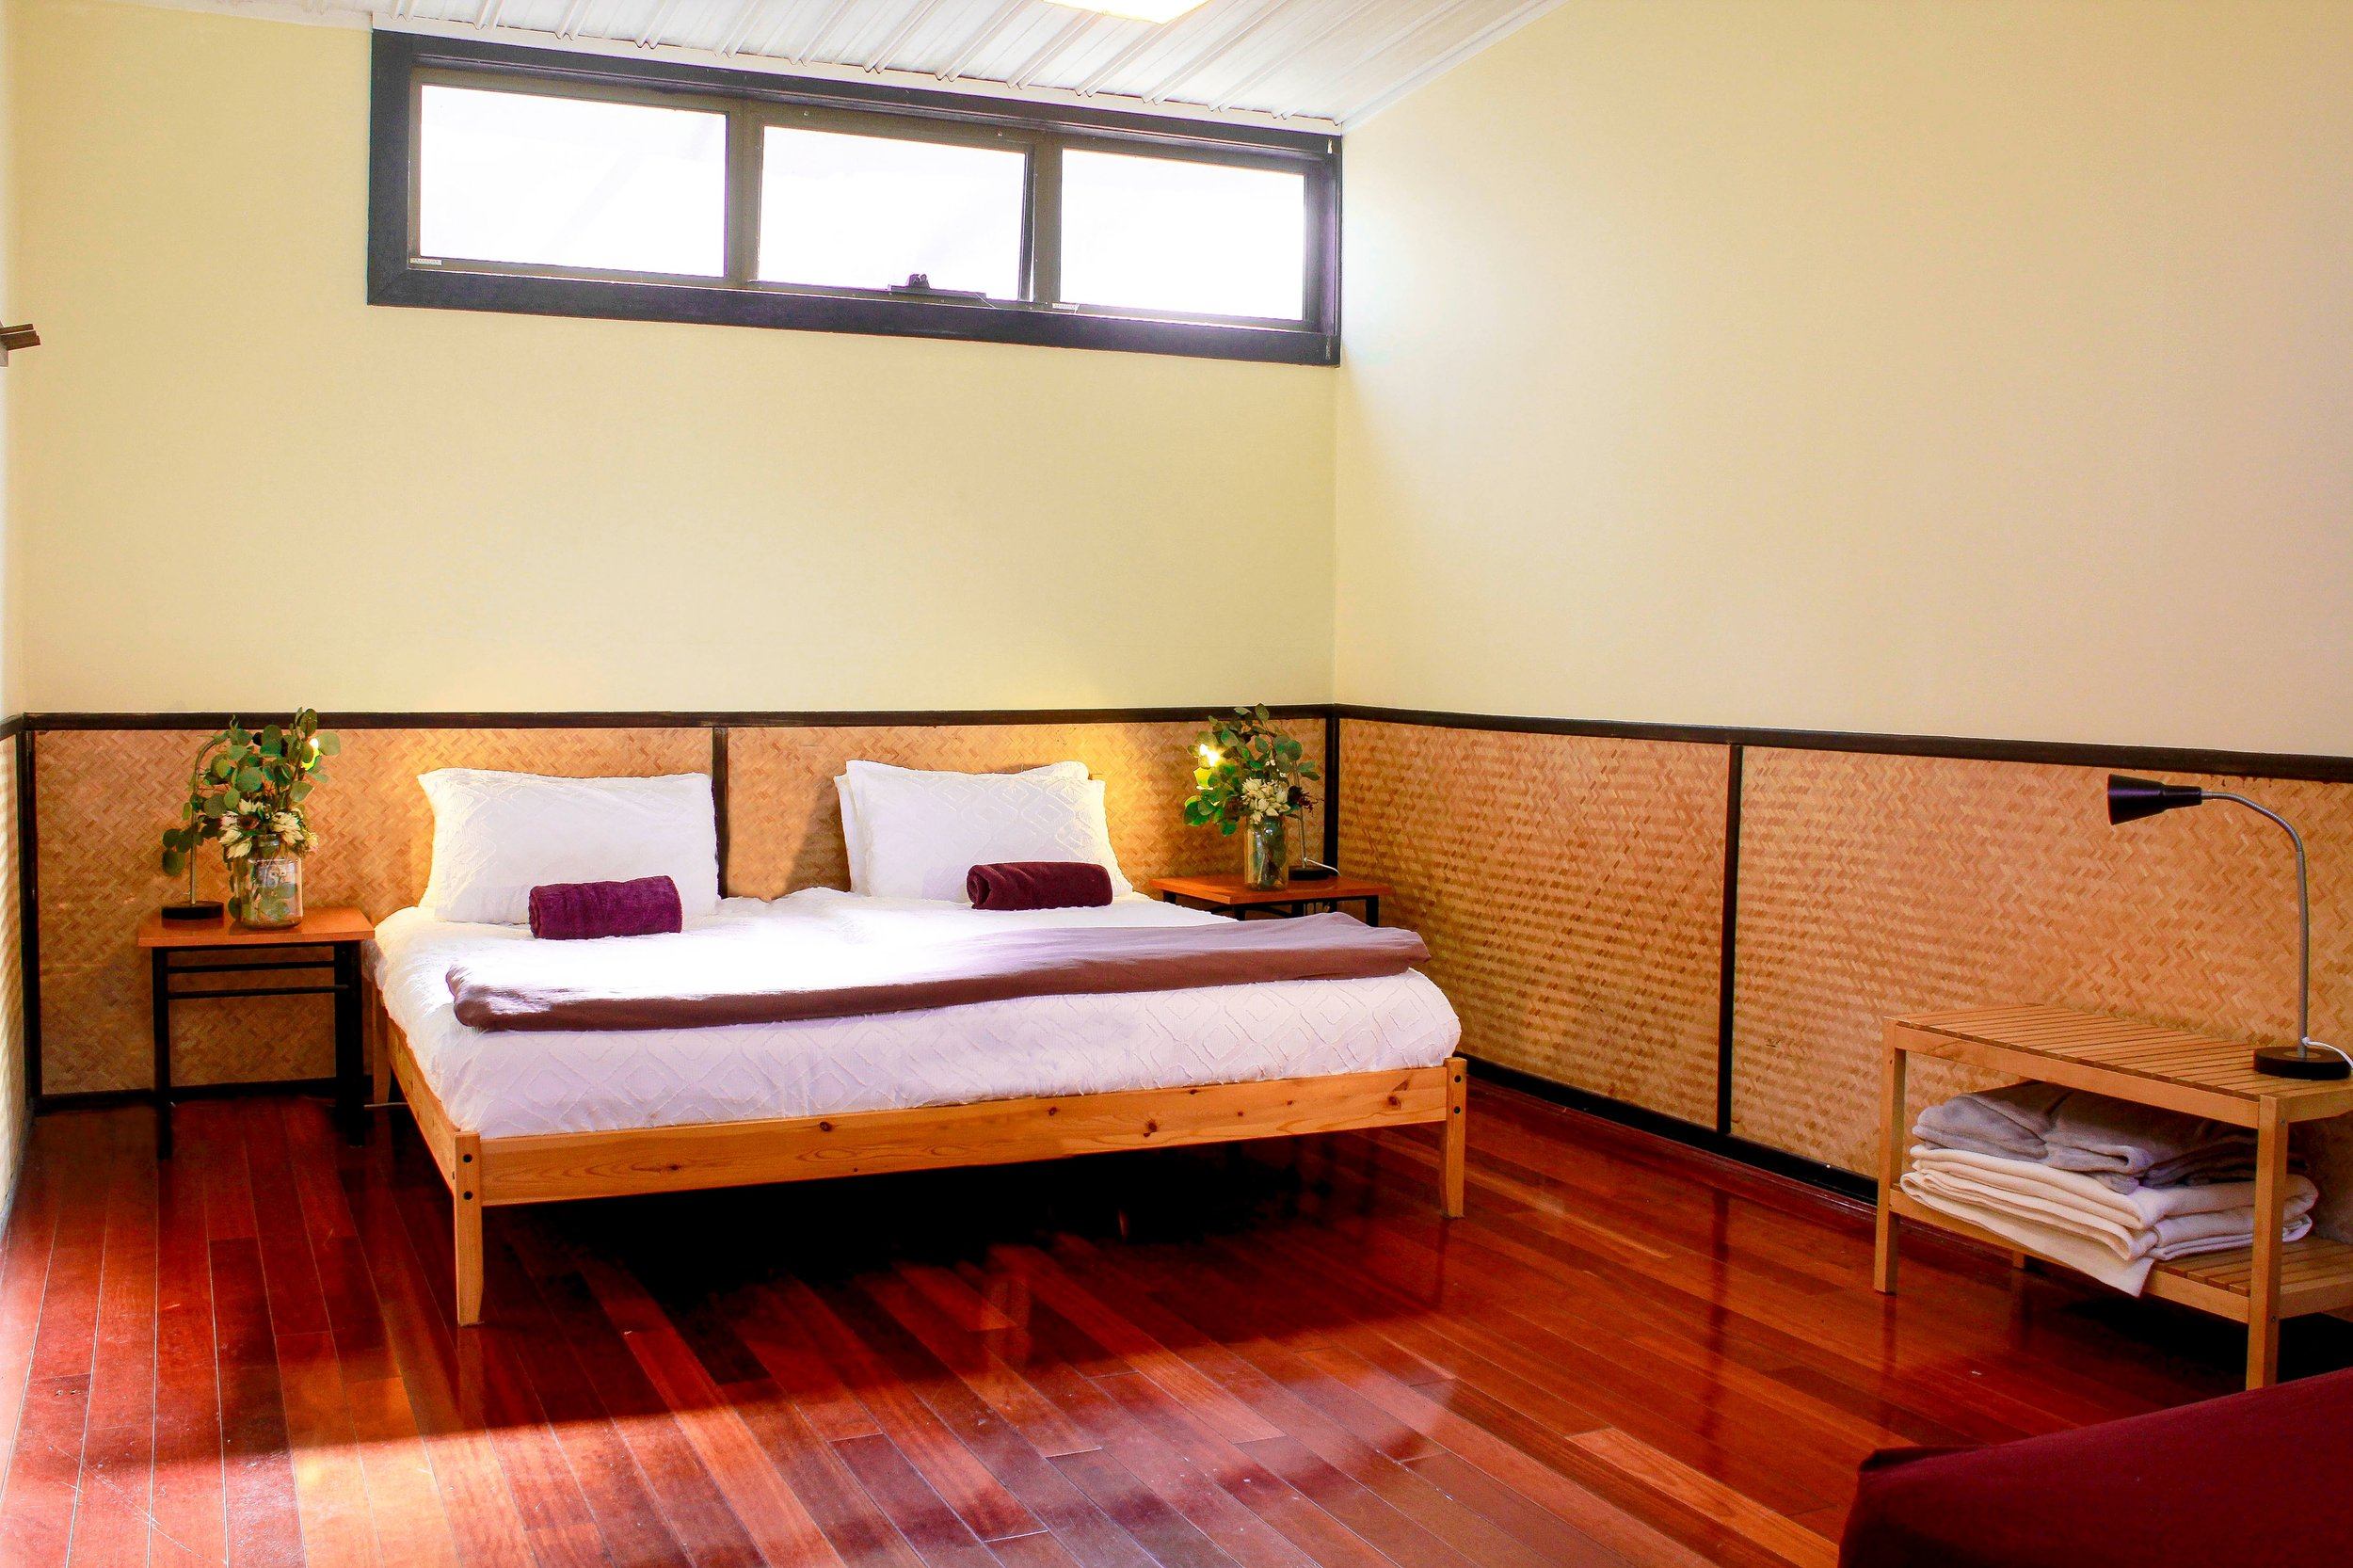 PACKAGE 3 - QUEEN + SINGLE W/SHARED FACILITIES Features: Queen Size Bed + Single bed, communal bathrooms, polished wooden floors, fans + heater, free high speed WiFi, free parking. Incl. yoga classes + 3 vegan meals daily + workshops.